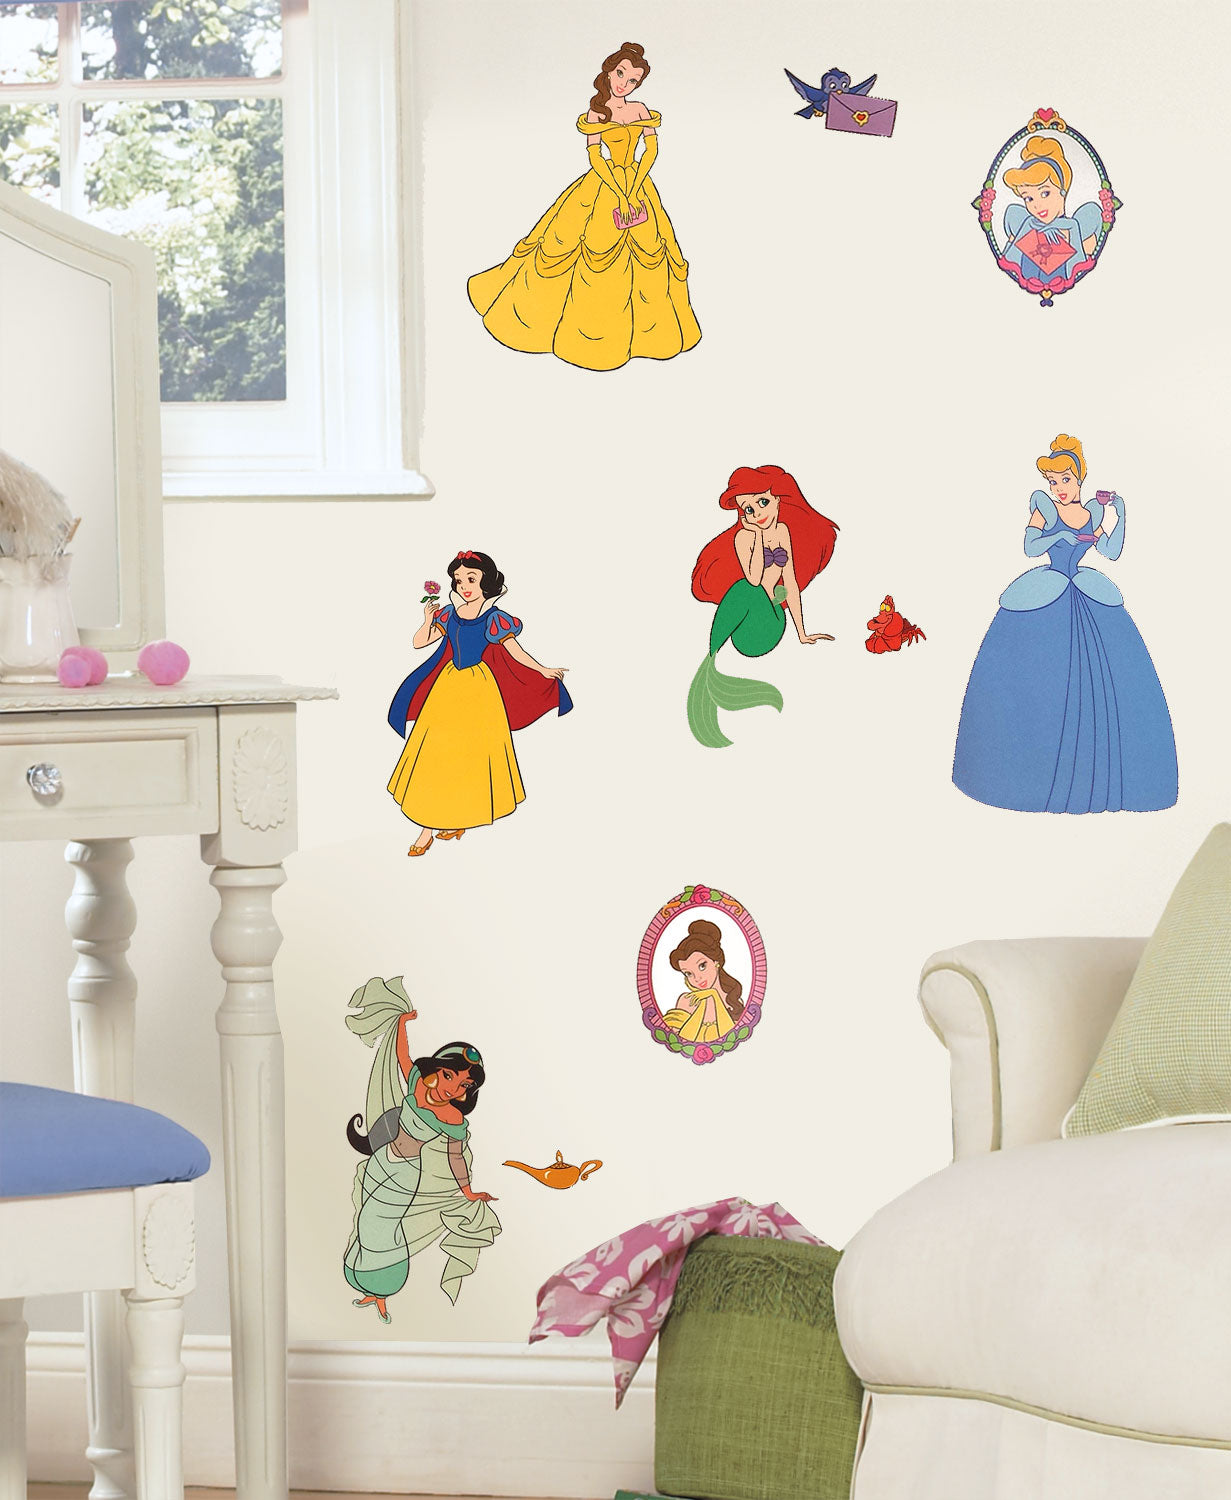 Disney princess stickers royal portraits wall decals obedding disney princess portraits wall stickers amipublicfo Image collections